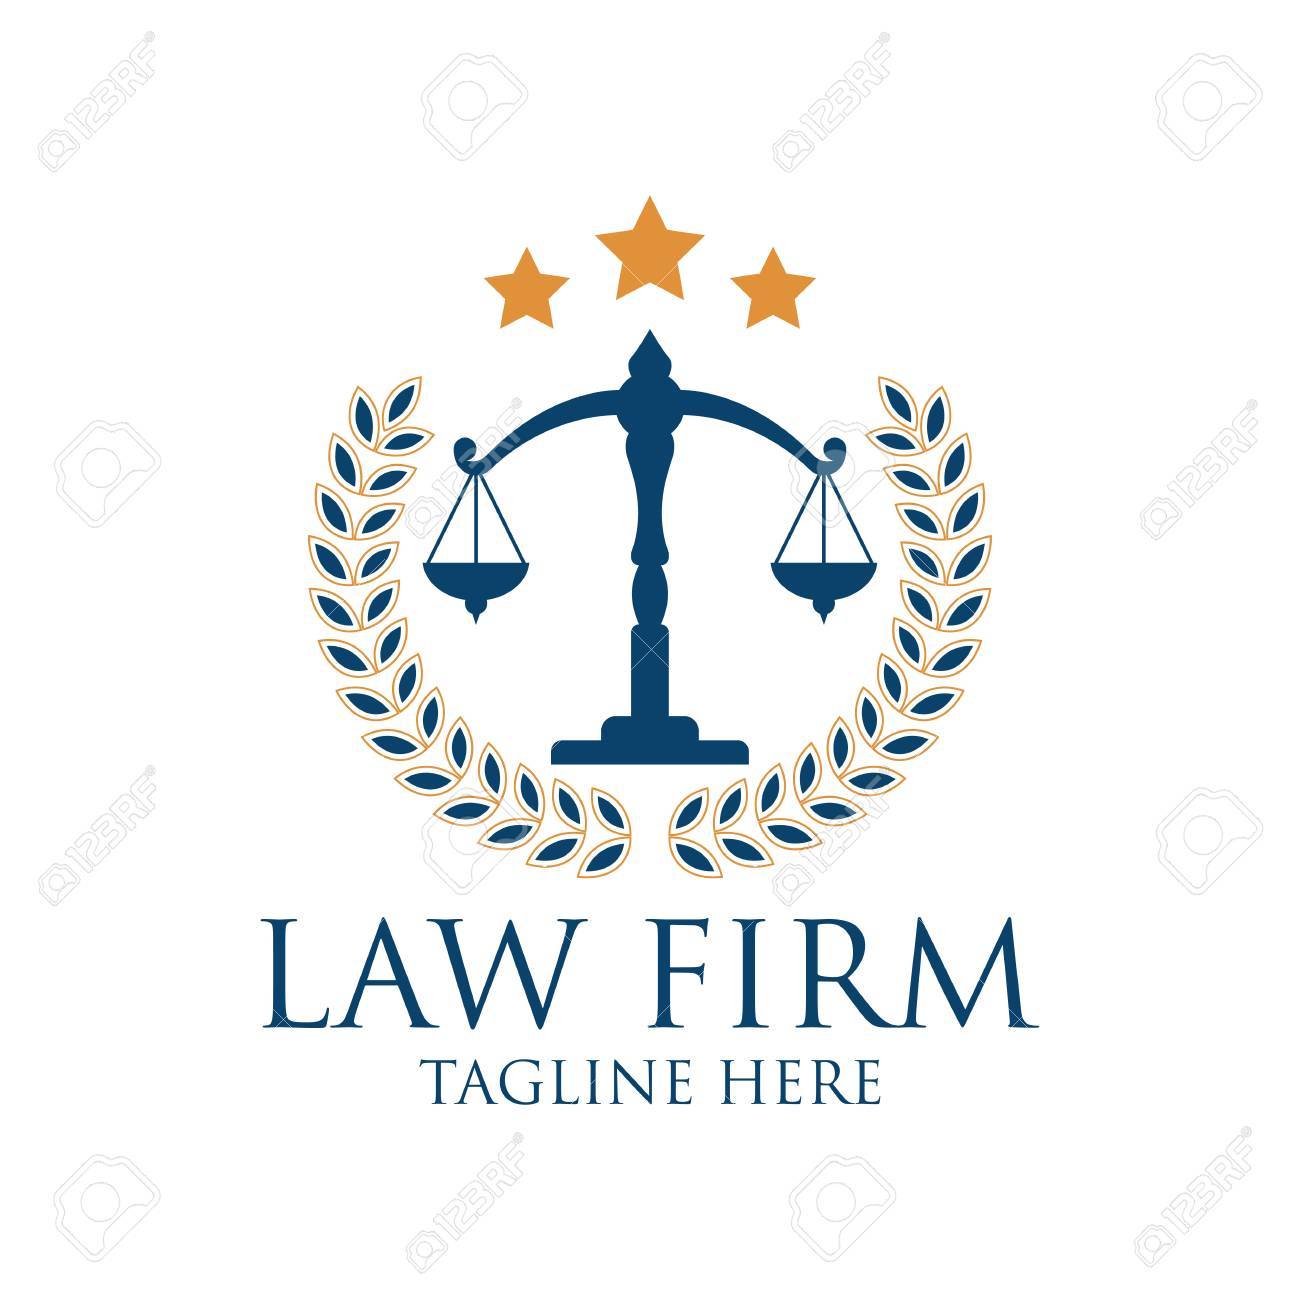 Law firm logo with text space for your slogan / tagline, vector